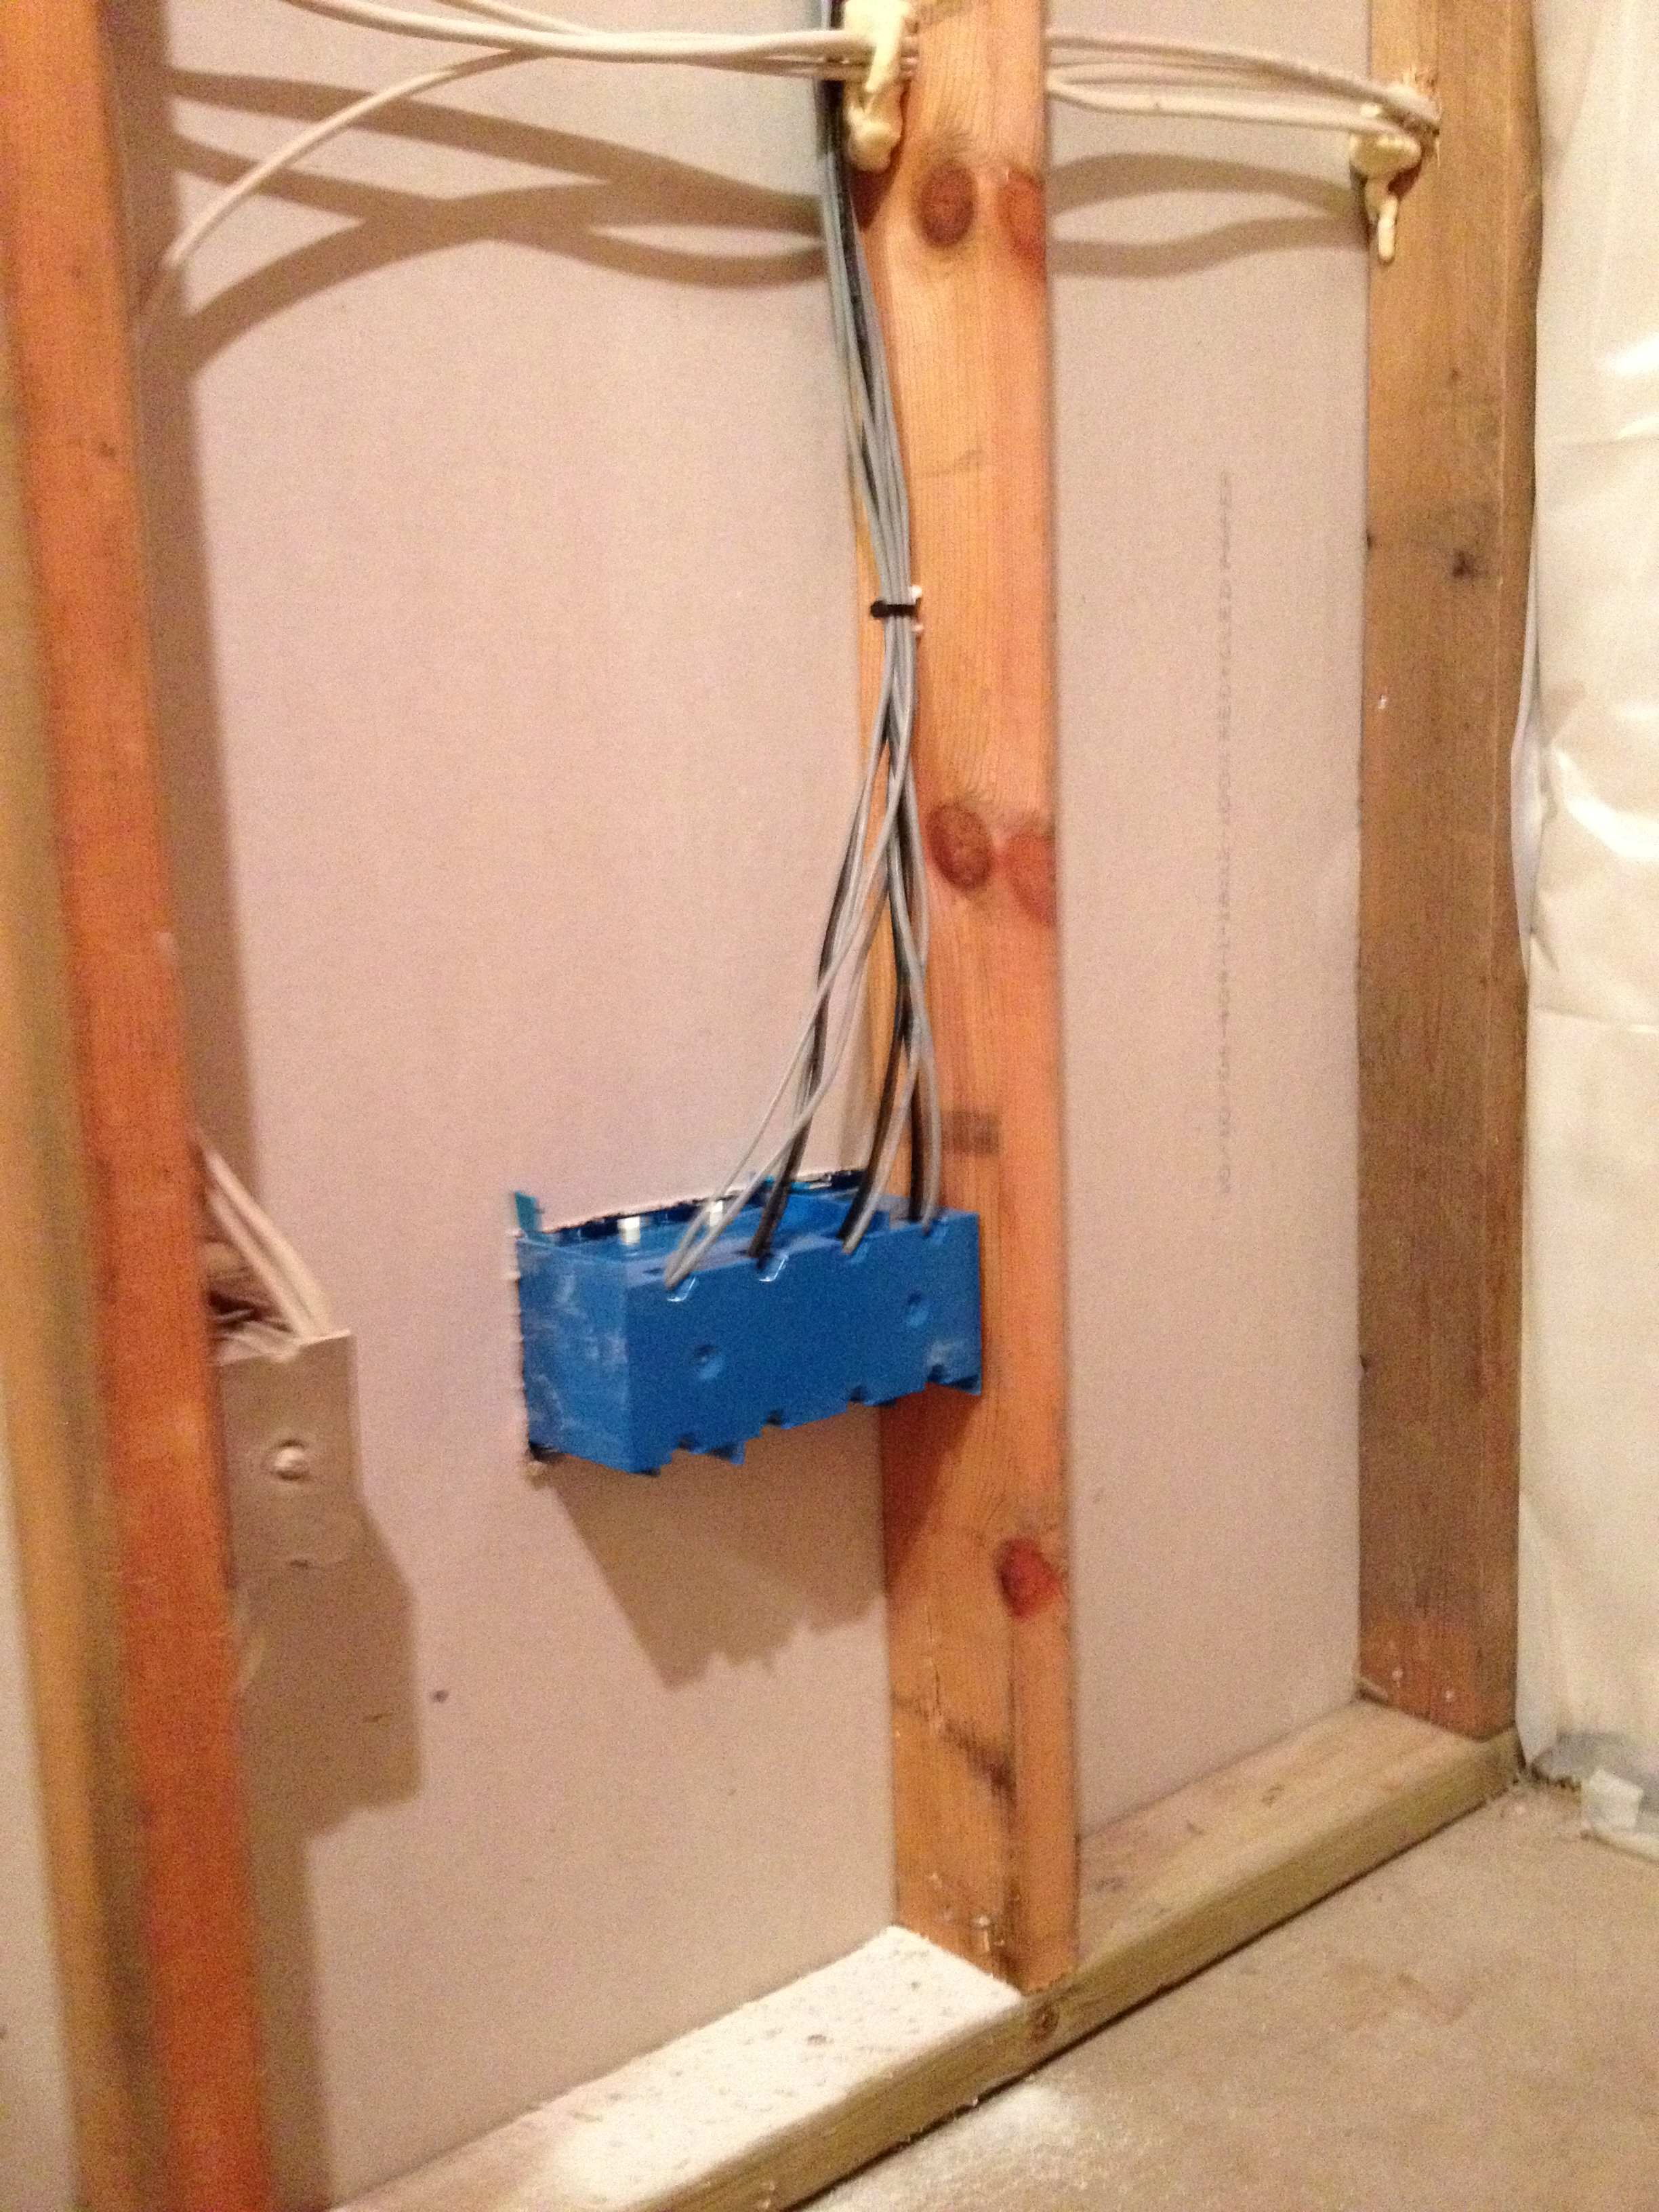 Wiring Surround Speakers In Wall